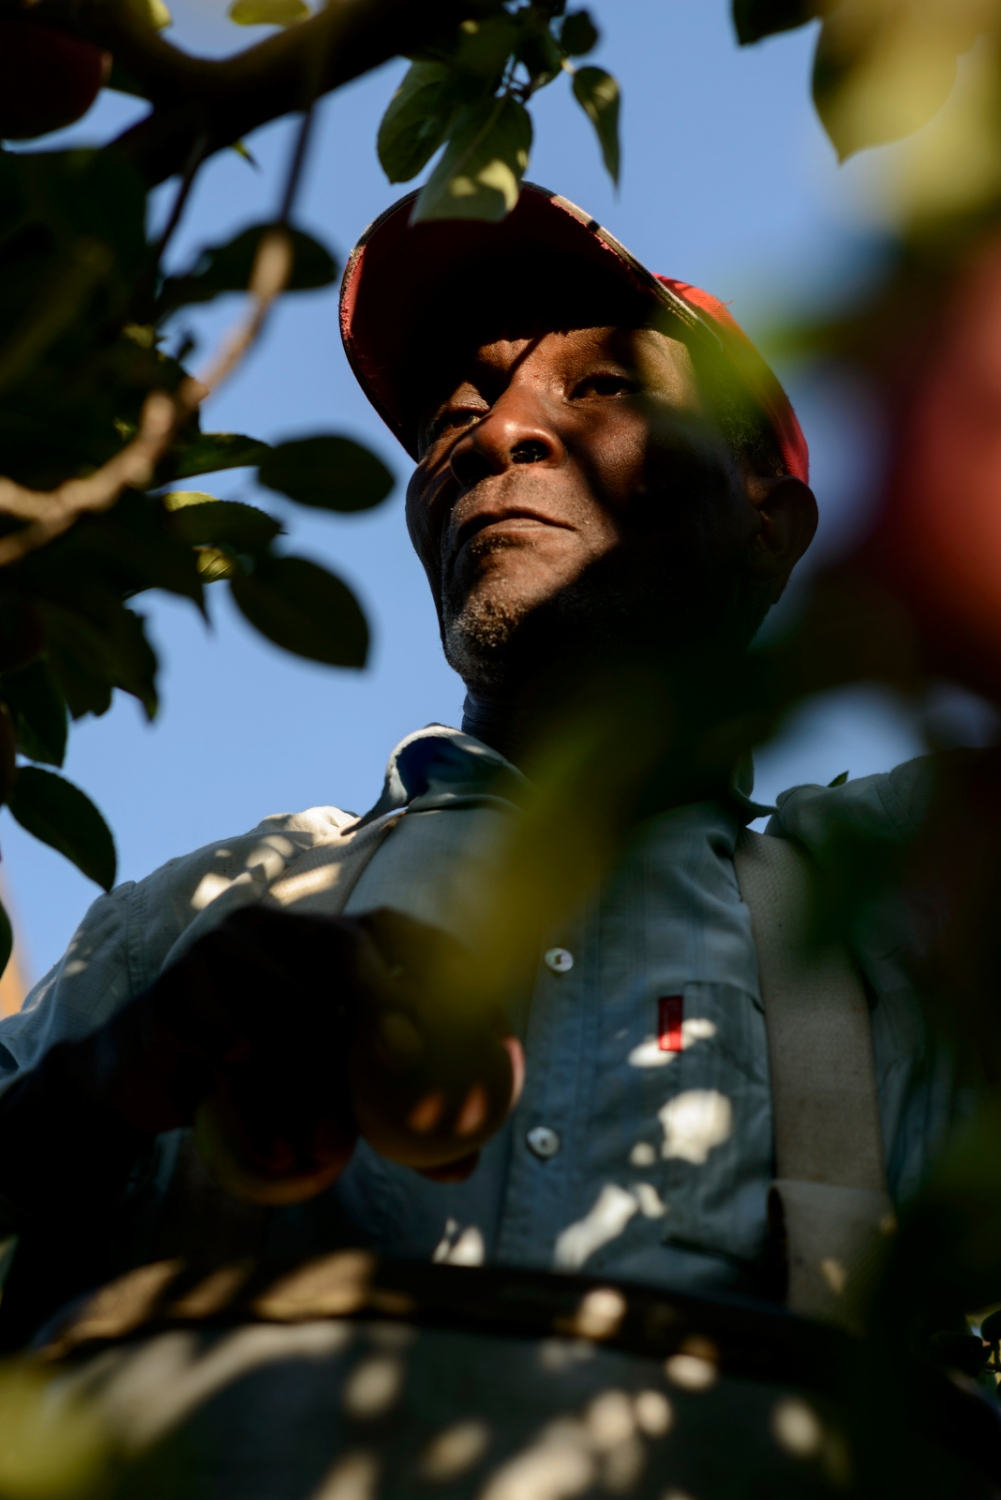 Solomon Carty of Clarendon, Jamaica is an apple picker at Sunrise Orchards, Cornwall, Vermont.